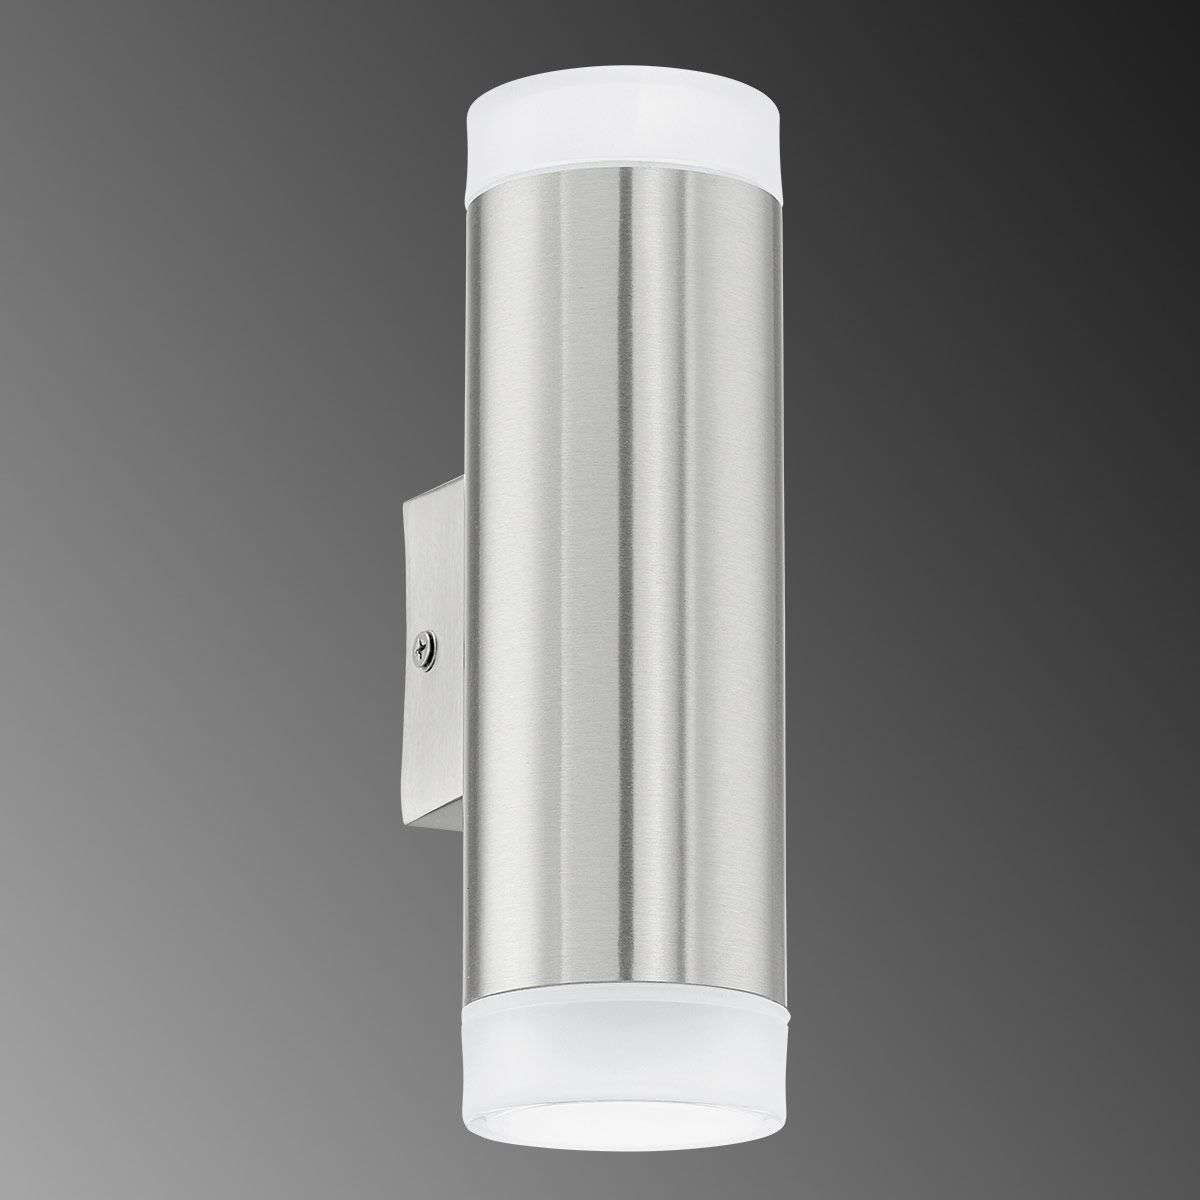 Riga Up Down Led Outside Wall Light